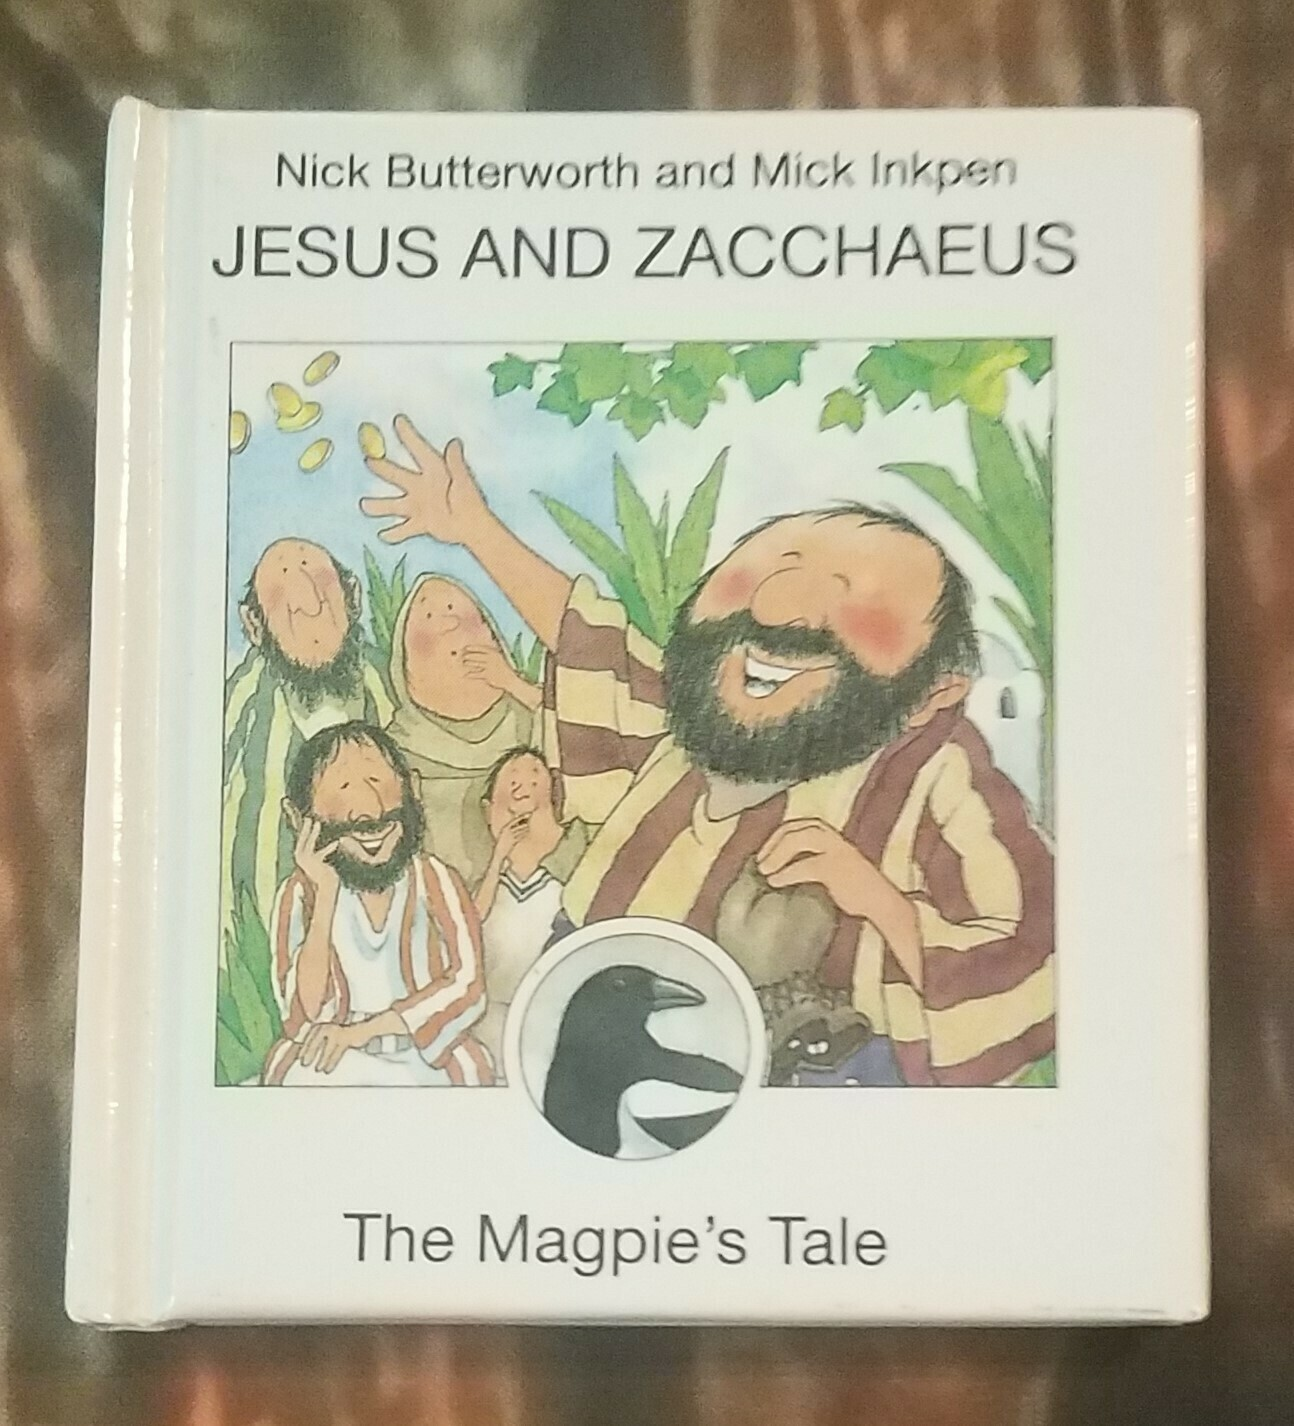 Jesus and Zacchaeus: The Magpie's Tale by Nick Butterworth and Mick Inkpen